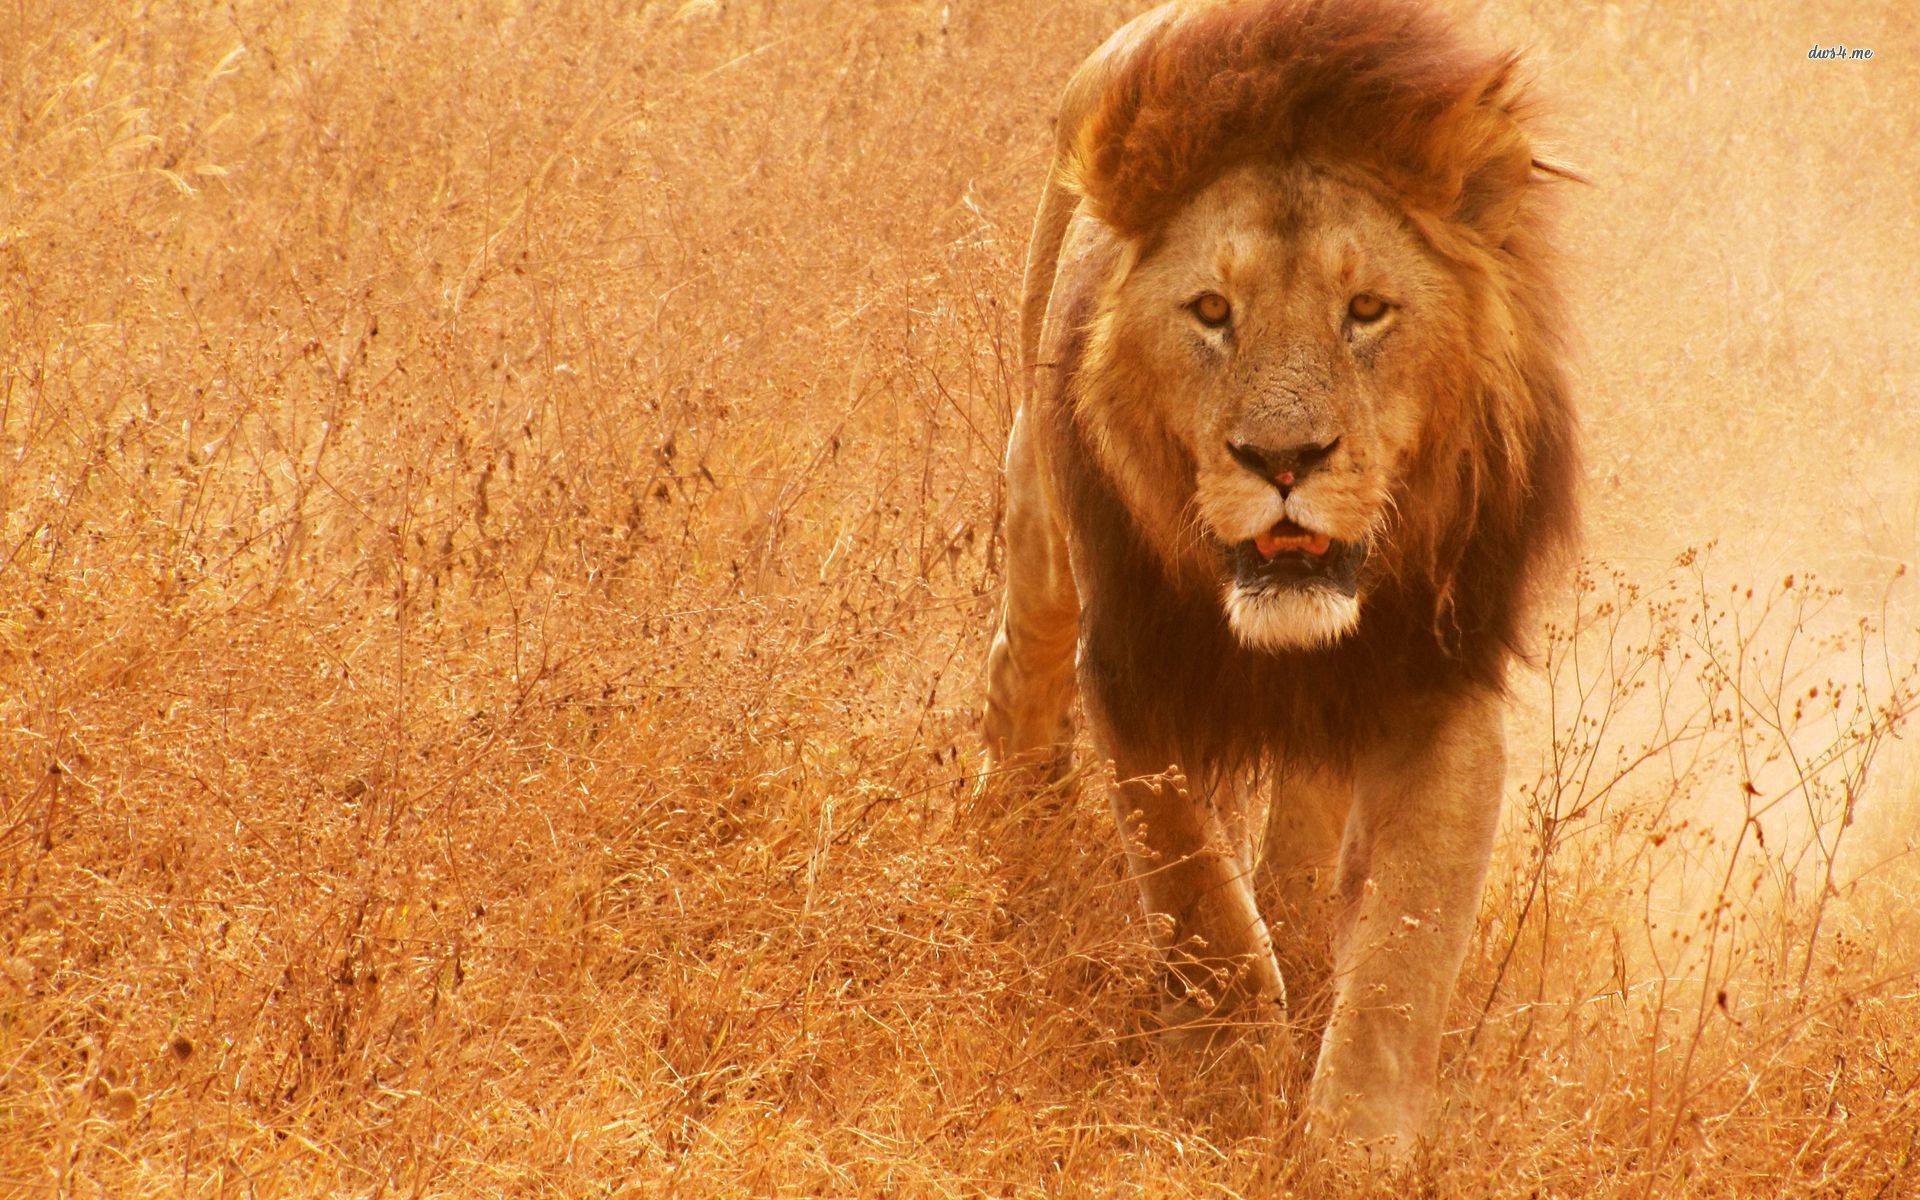 Animals Happy Lion Wallpapers Hd Desktop And Mobile: Lion Full HD Wallpaper And Background Image